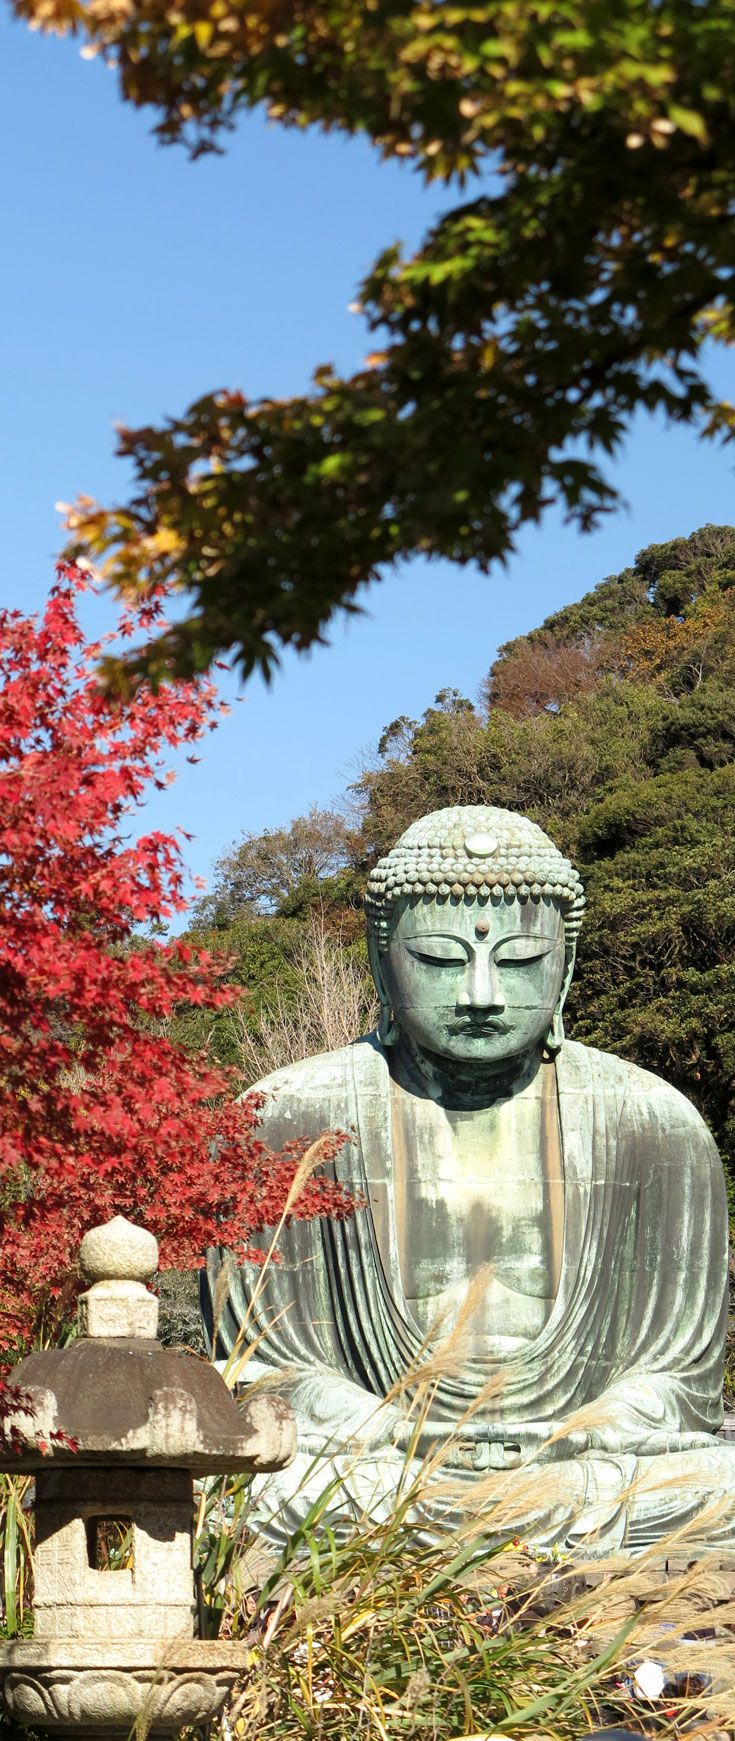 The Great Buddha of Kamakura - Kōtoku-in Buddhist Temple in the city of Kamakura, Kanagawa Prefecture | Japan